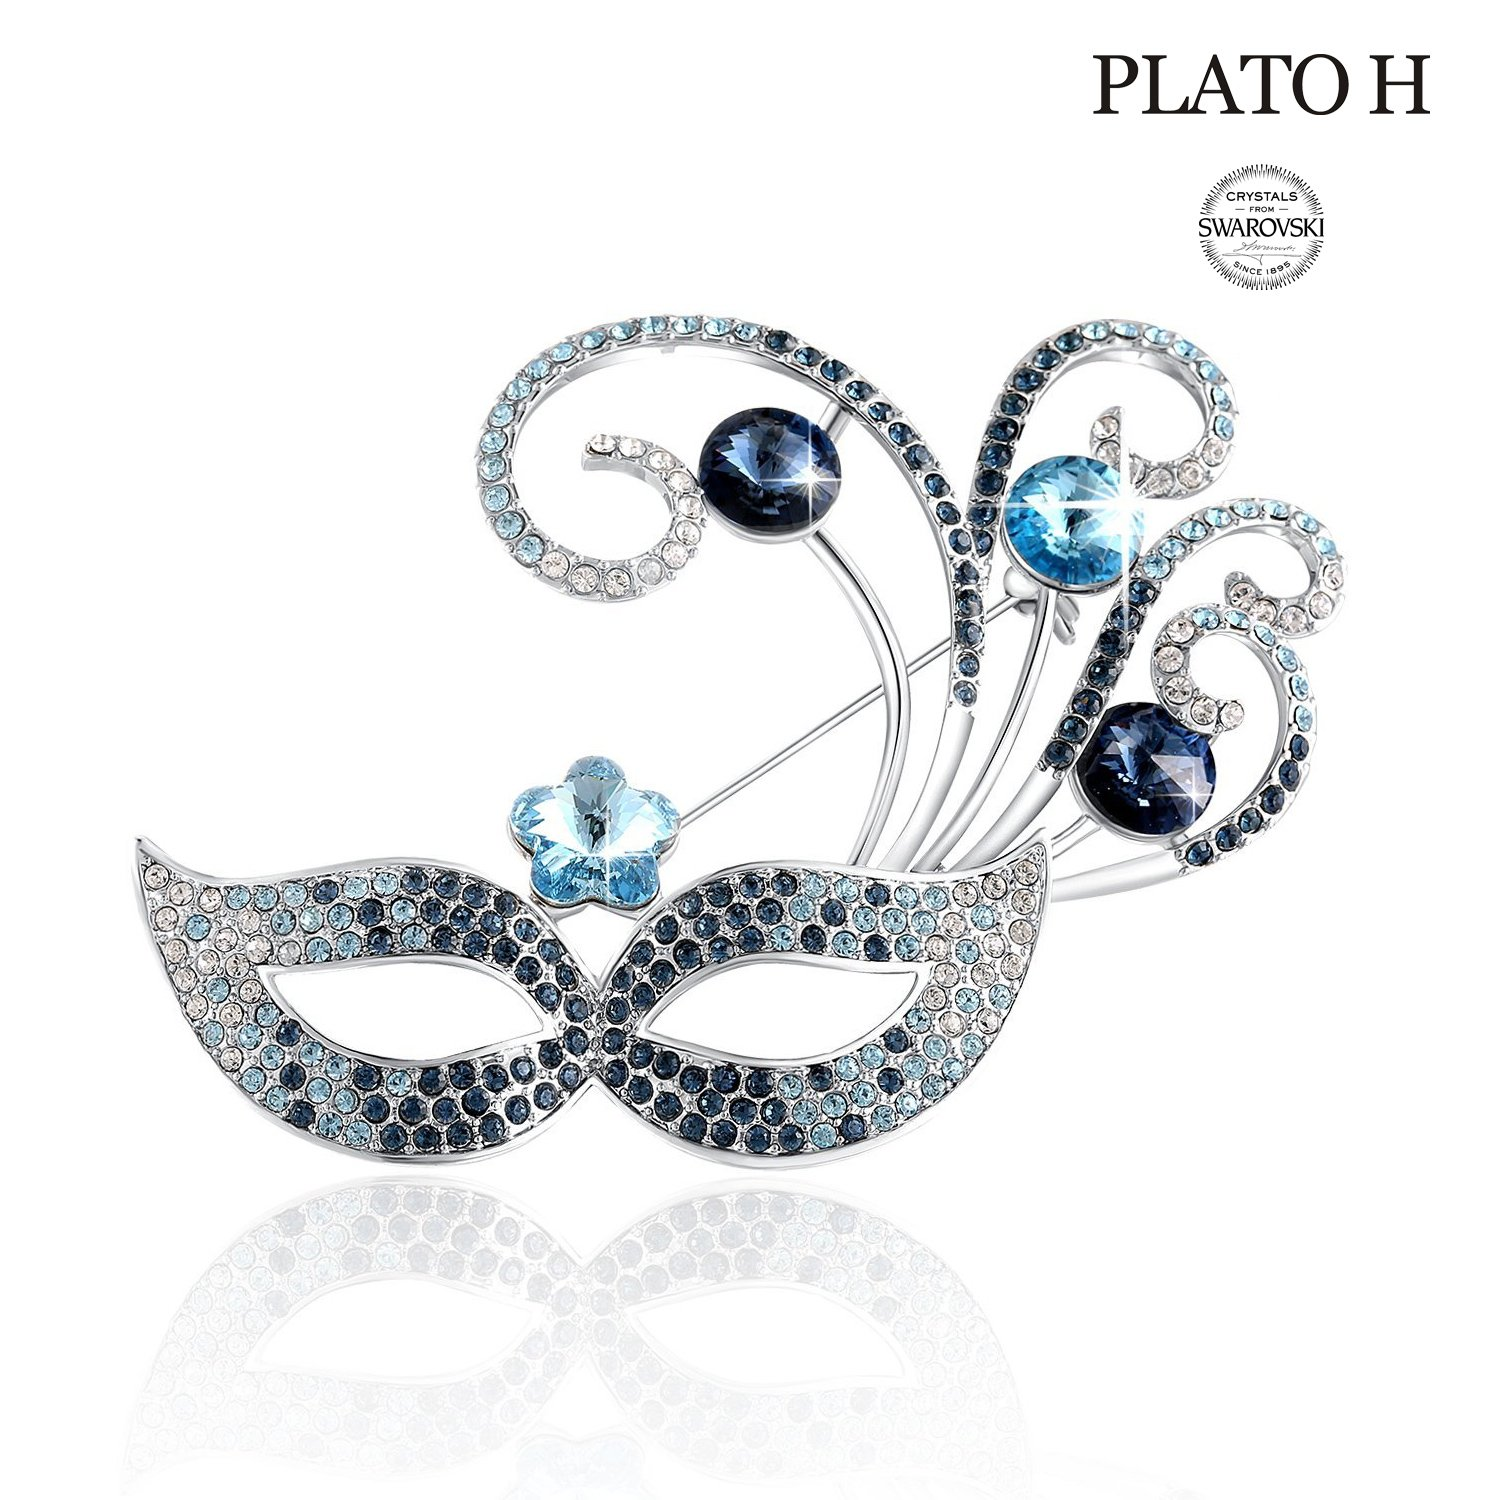 6d38962b8 Amazon.com: PLATO H Woman Mask Pins Brooches Venice Bauta Brooch with  Swarovski Crystals Mom Ideal Gift, Women Domino Crystal Brooch Pins: Jewelry